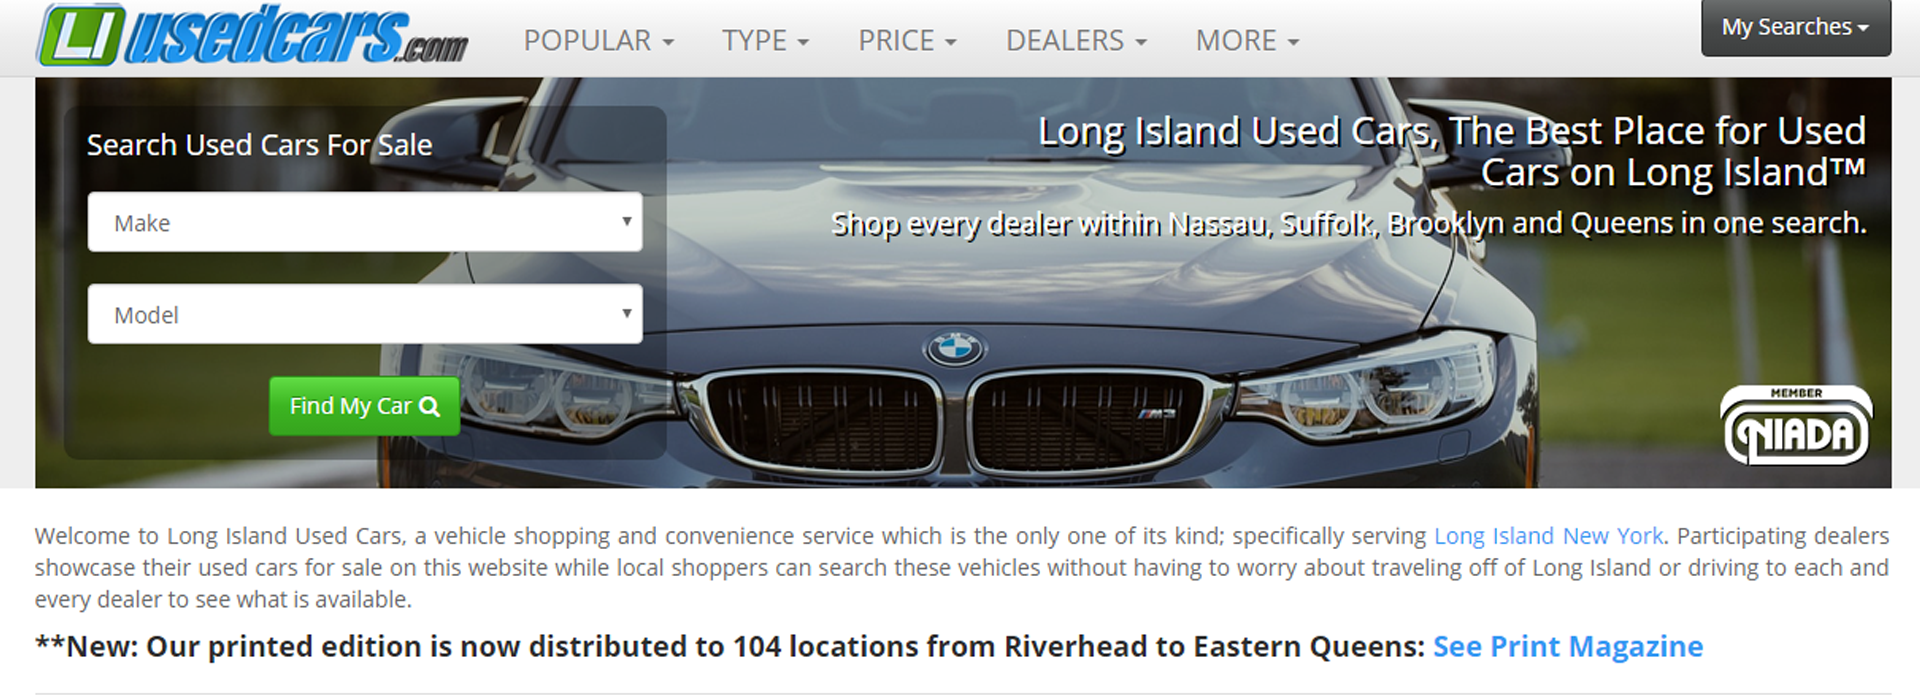 LIUsedCars.com - The Best Place for Used Cars on Long Island by Long ...